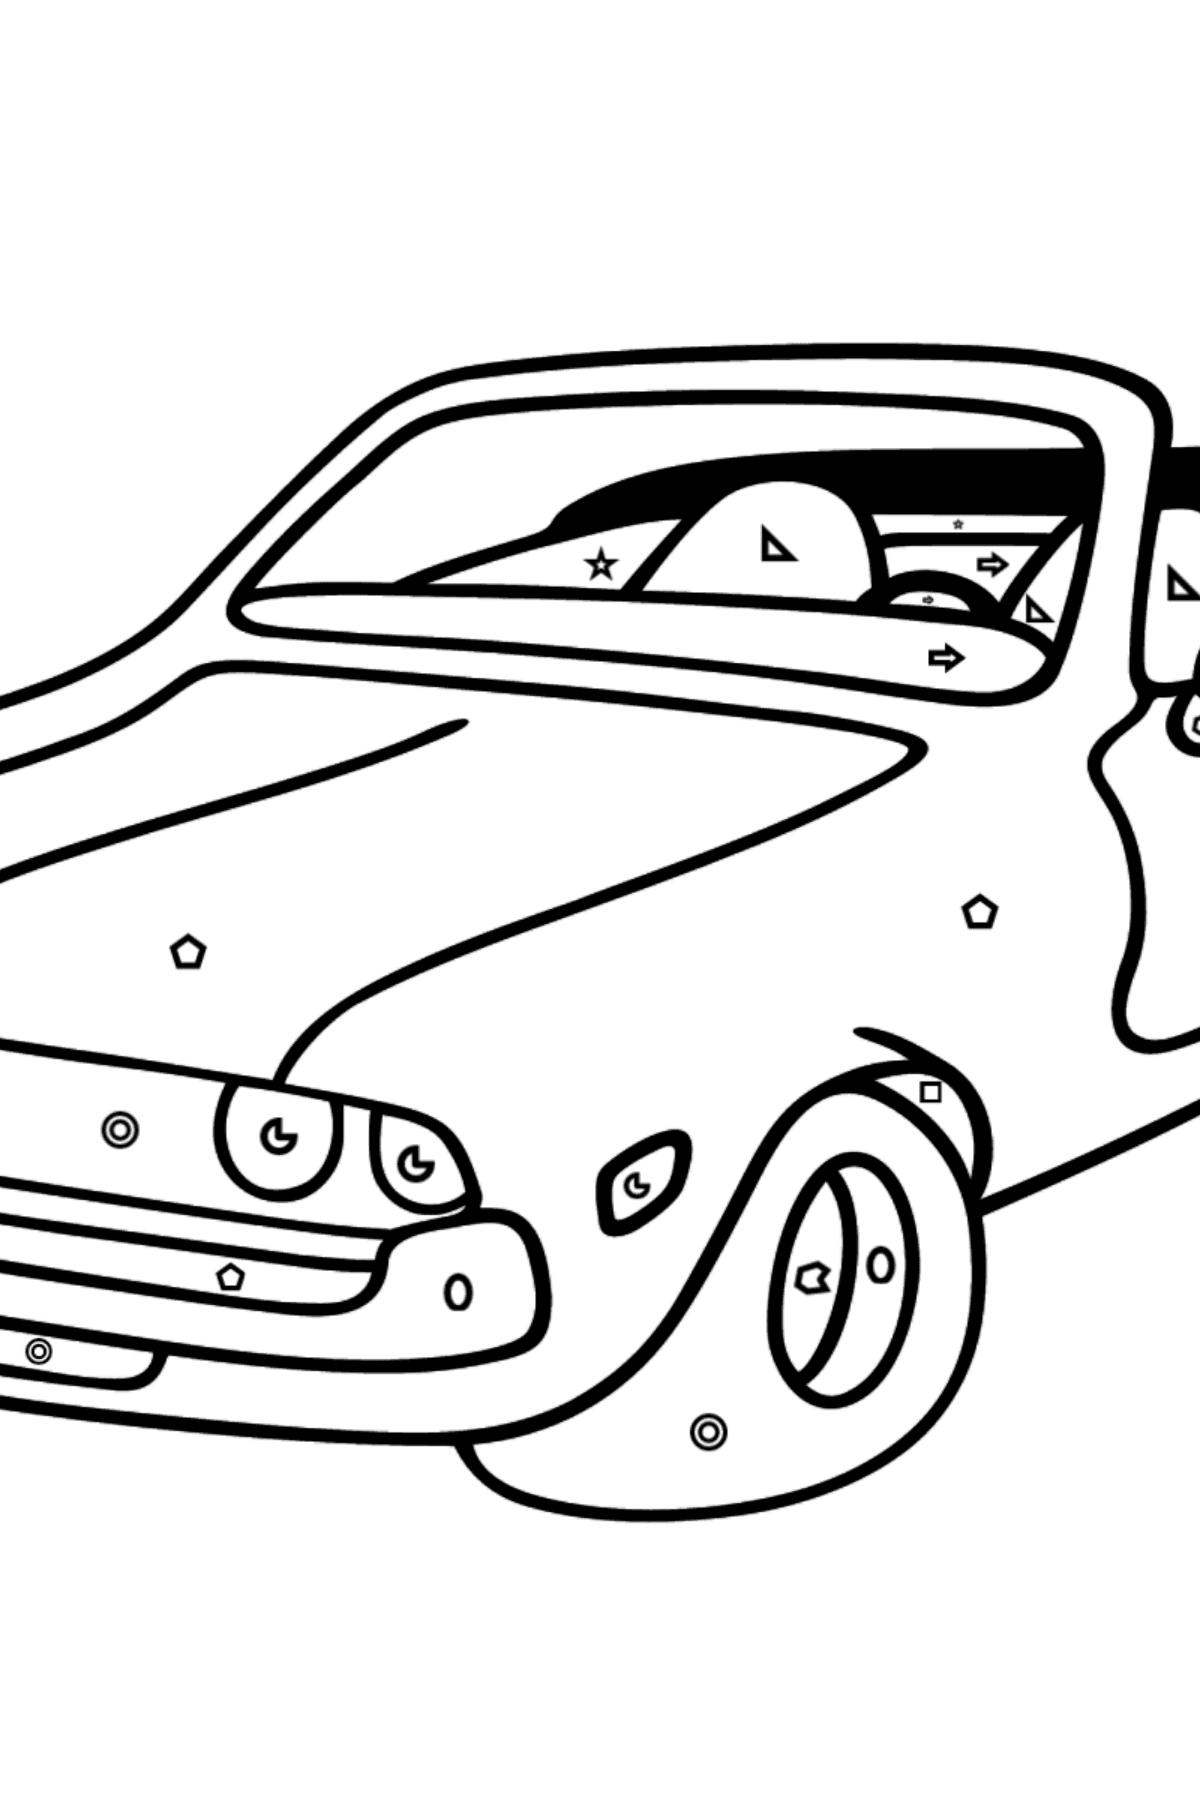 Open Top Cars coloring page - Coloring by Geometric Shapes for Kids